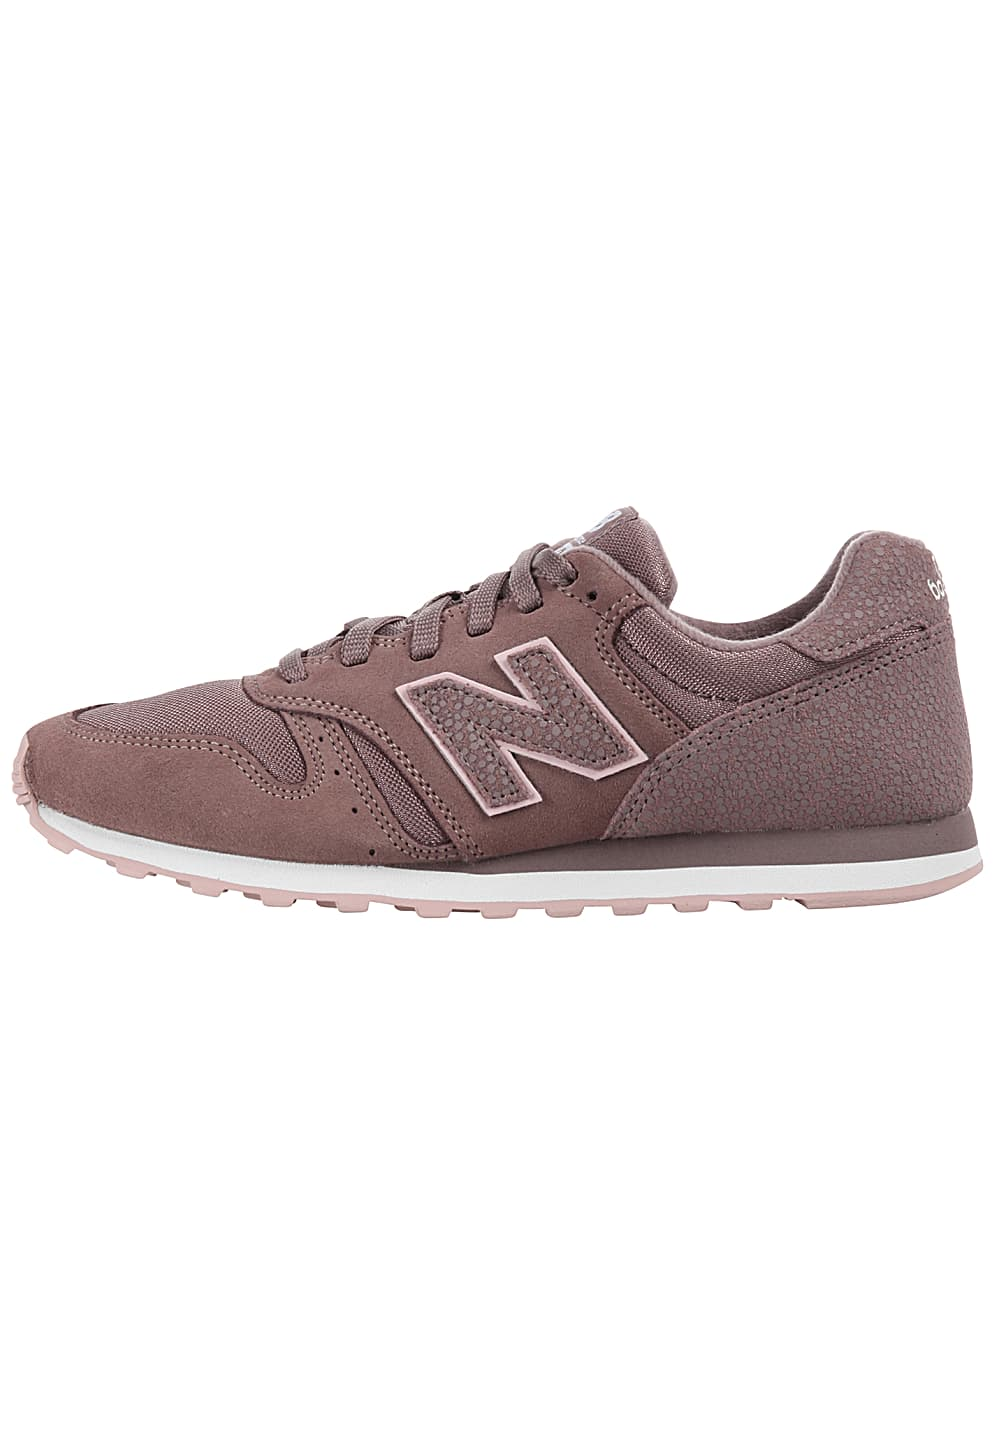 NEW BALANCE WL373 B - Sneaker für Damen - Pink - Planet Sports